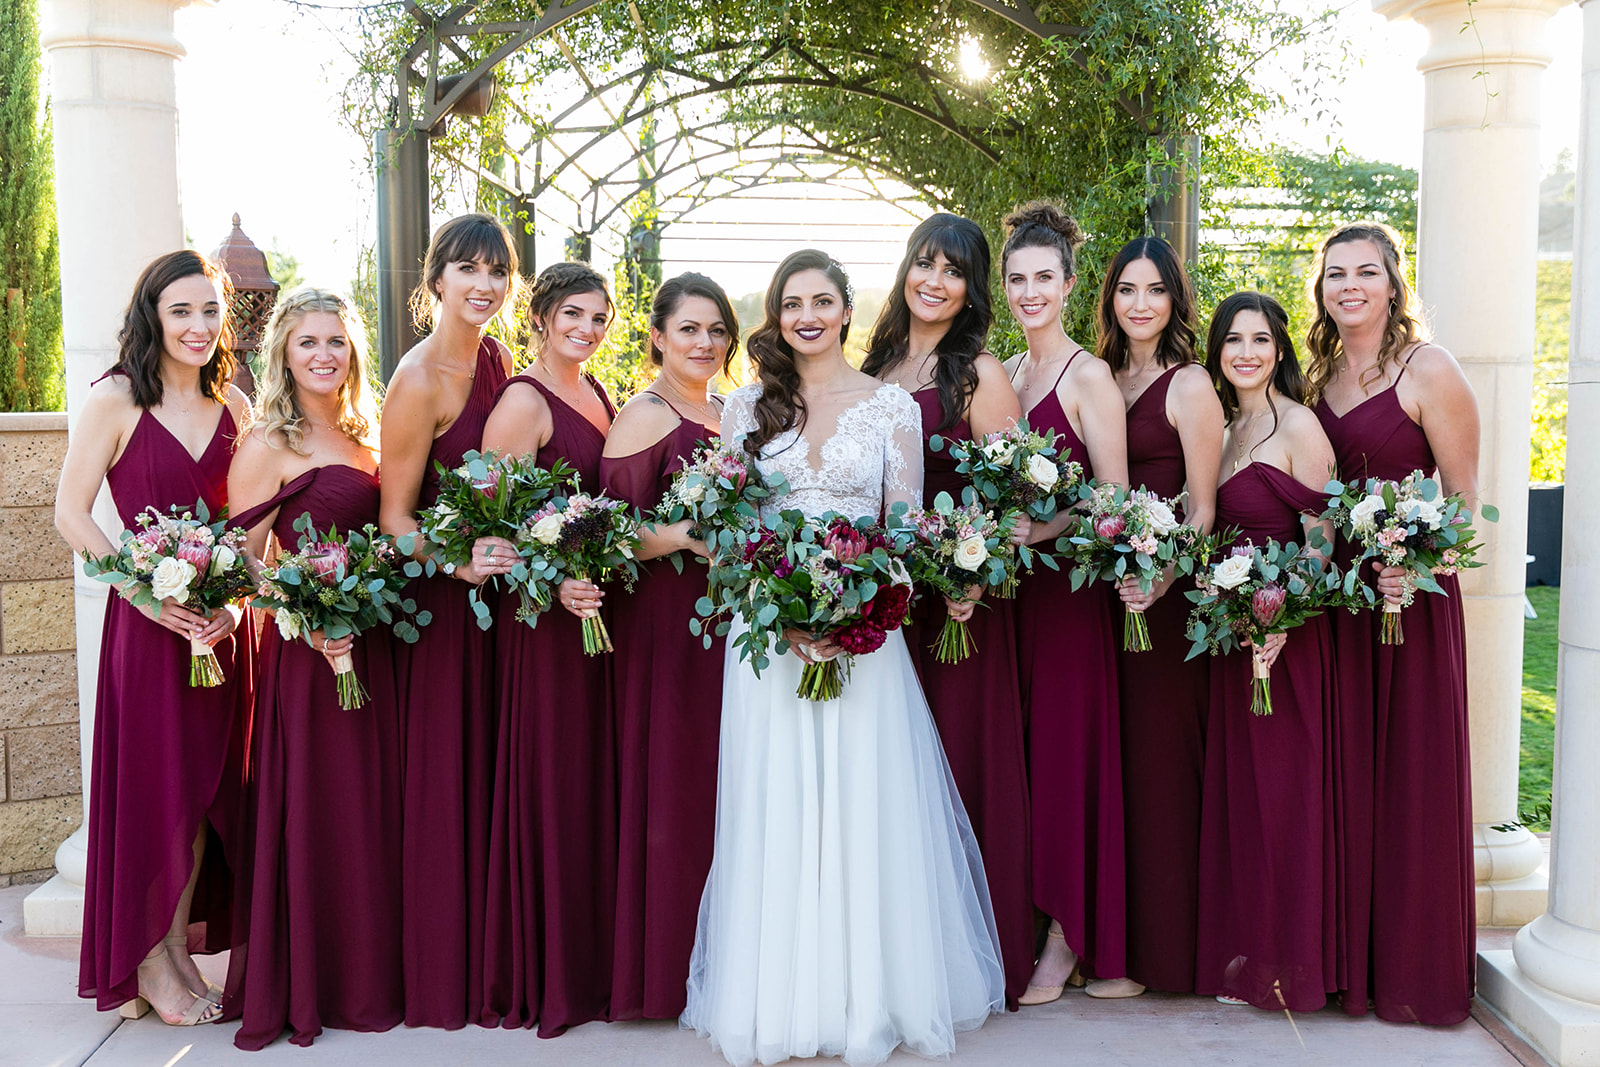 Organic Elegant Wine Country Wedding in Burgundy and Gold | Michelle Garibay Events | Leah Marie Photography | Fazeli Cellars